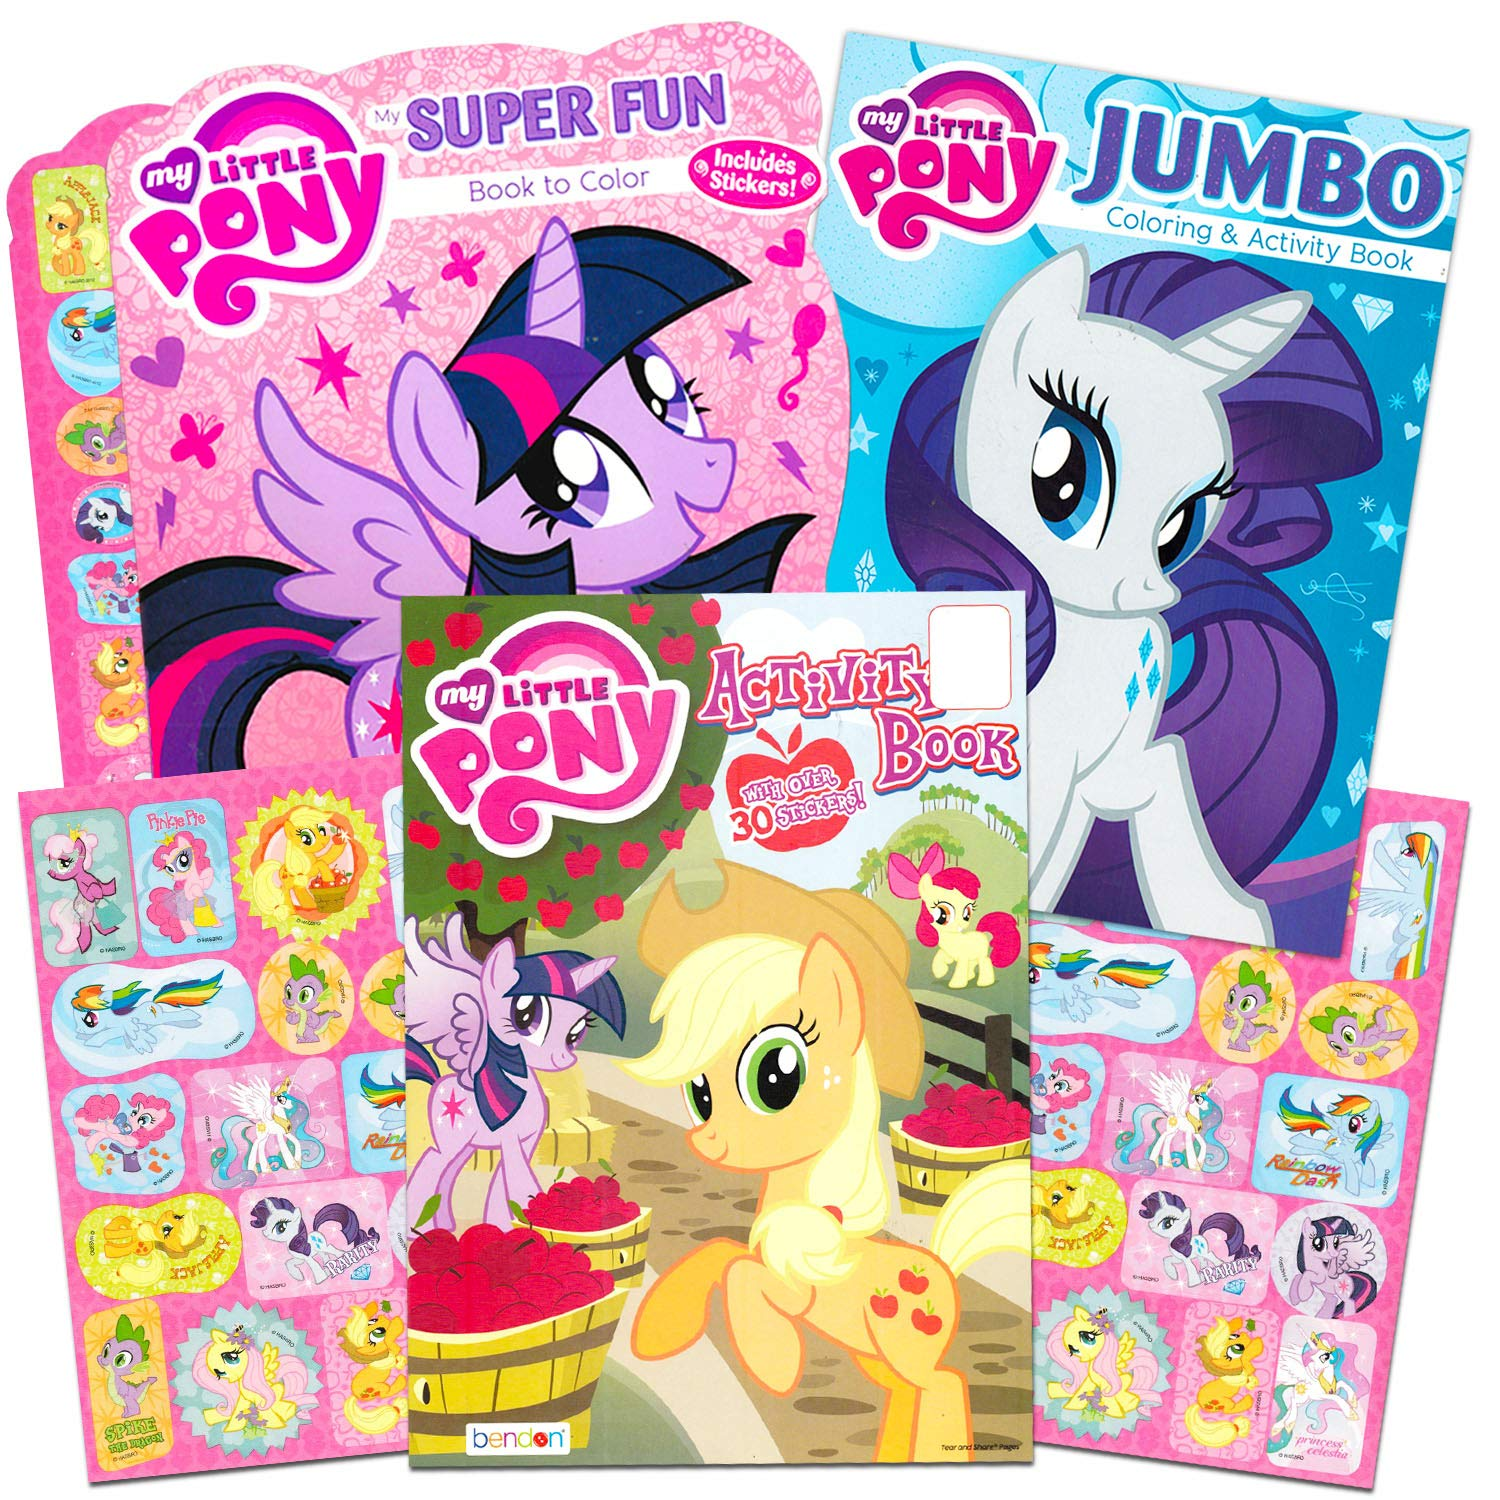 My little pony coloring book super set with stickers 4 mlp books over 375 pages and 75 my little pony stickers total featuring rainbow dash